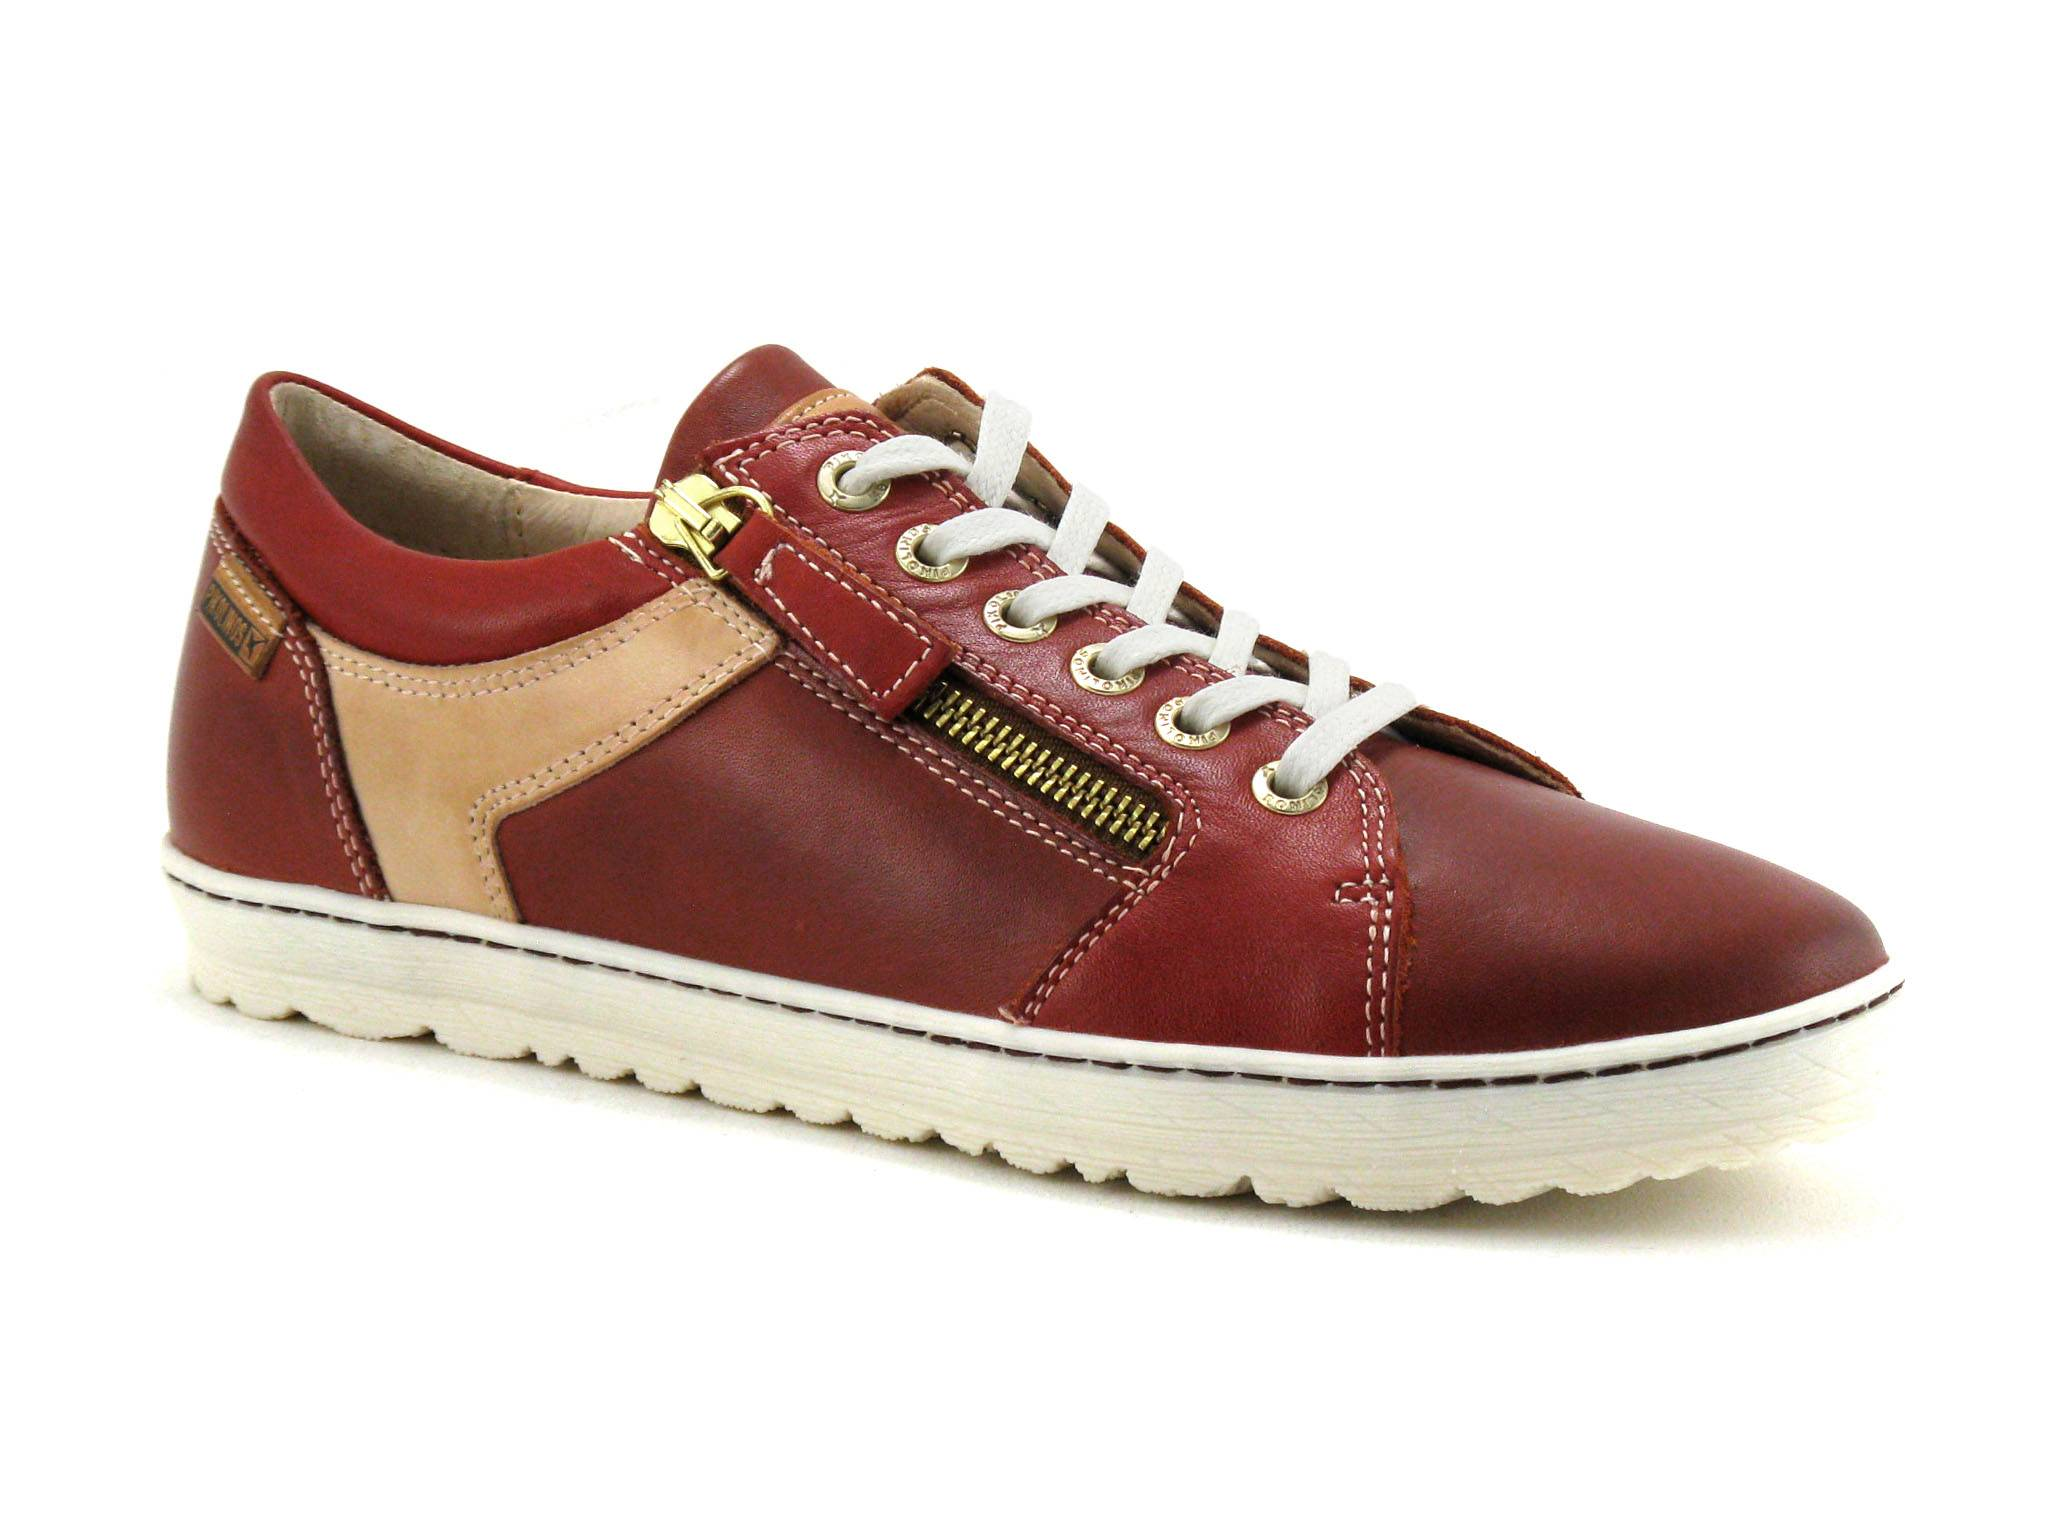 Pikolinos Chaussure basse / Derby Femme Pikolinos - Bordeaux,Rouge - Point. 36,37,38,39,40,41